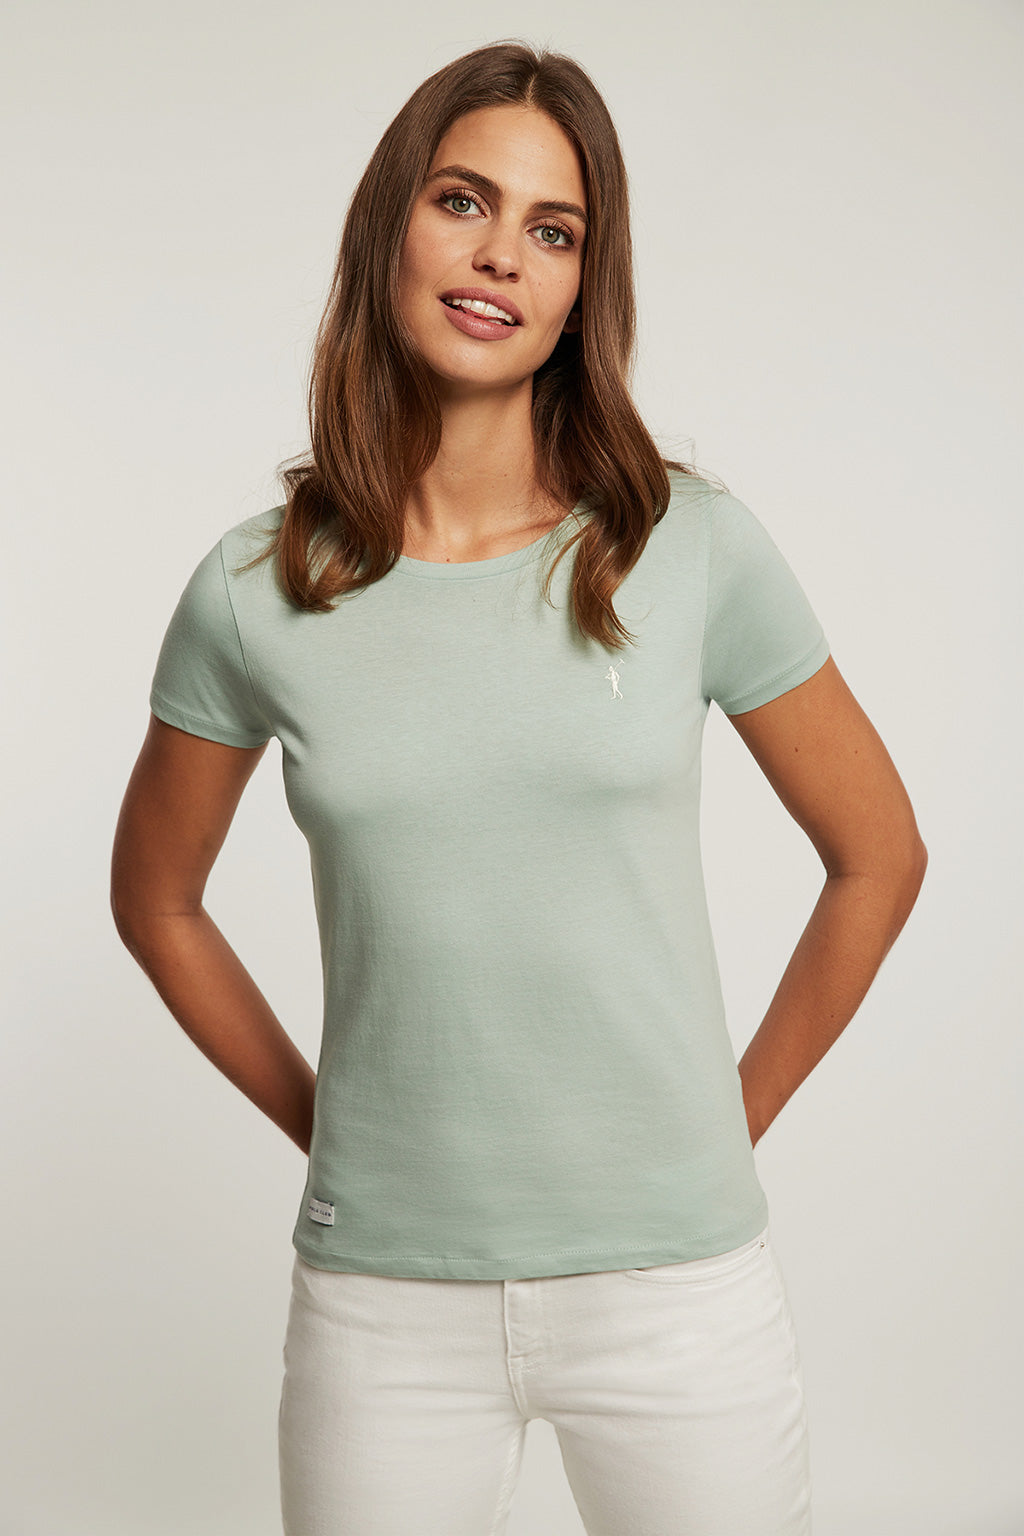 Salvia green organic cotton tee